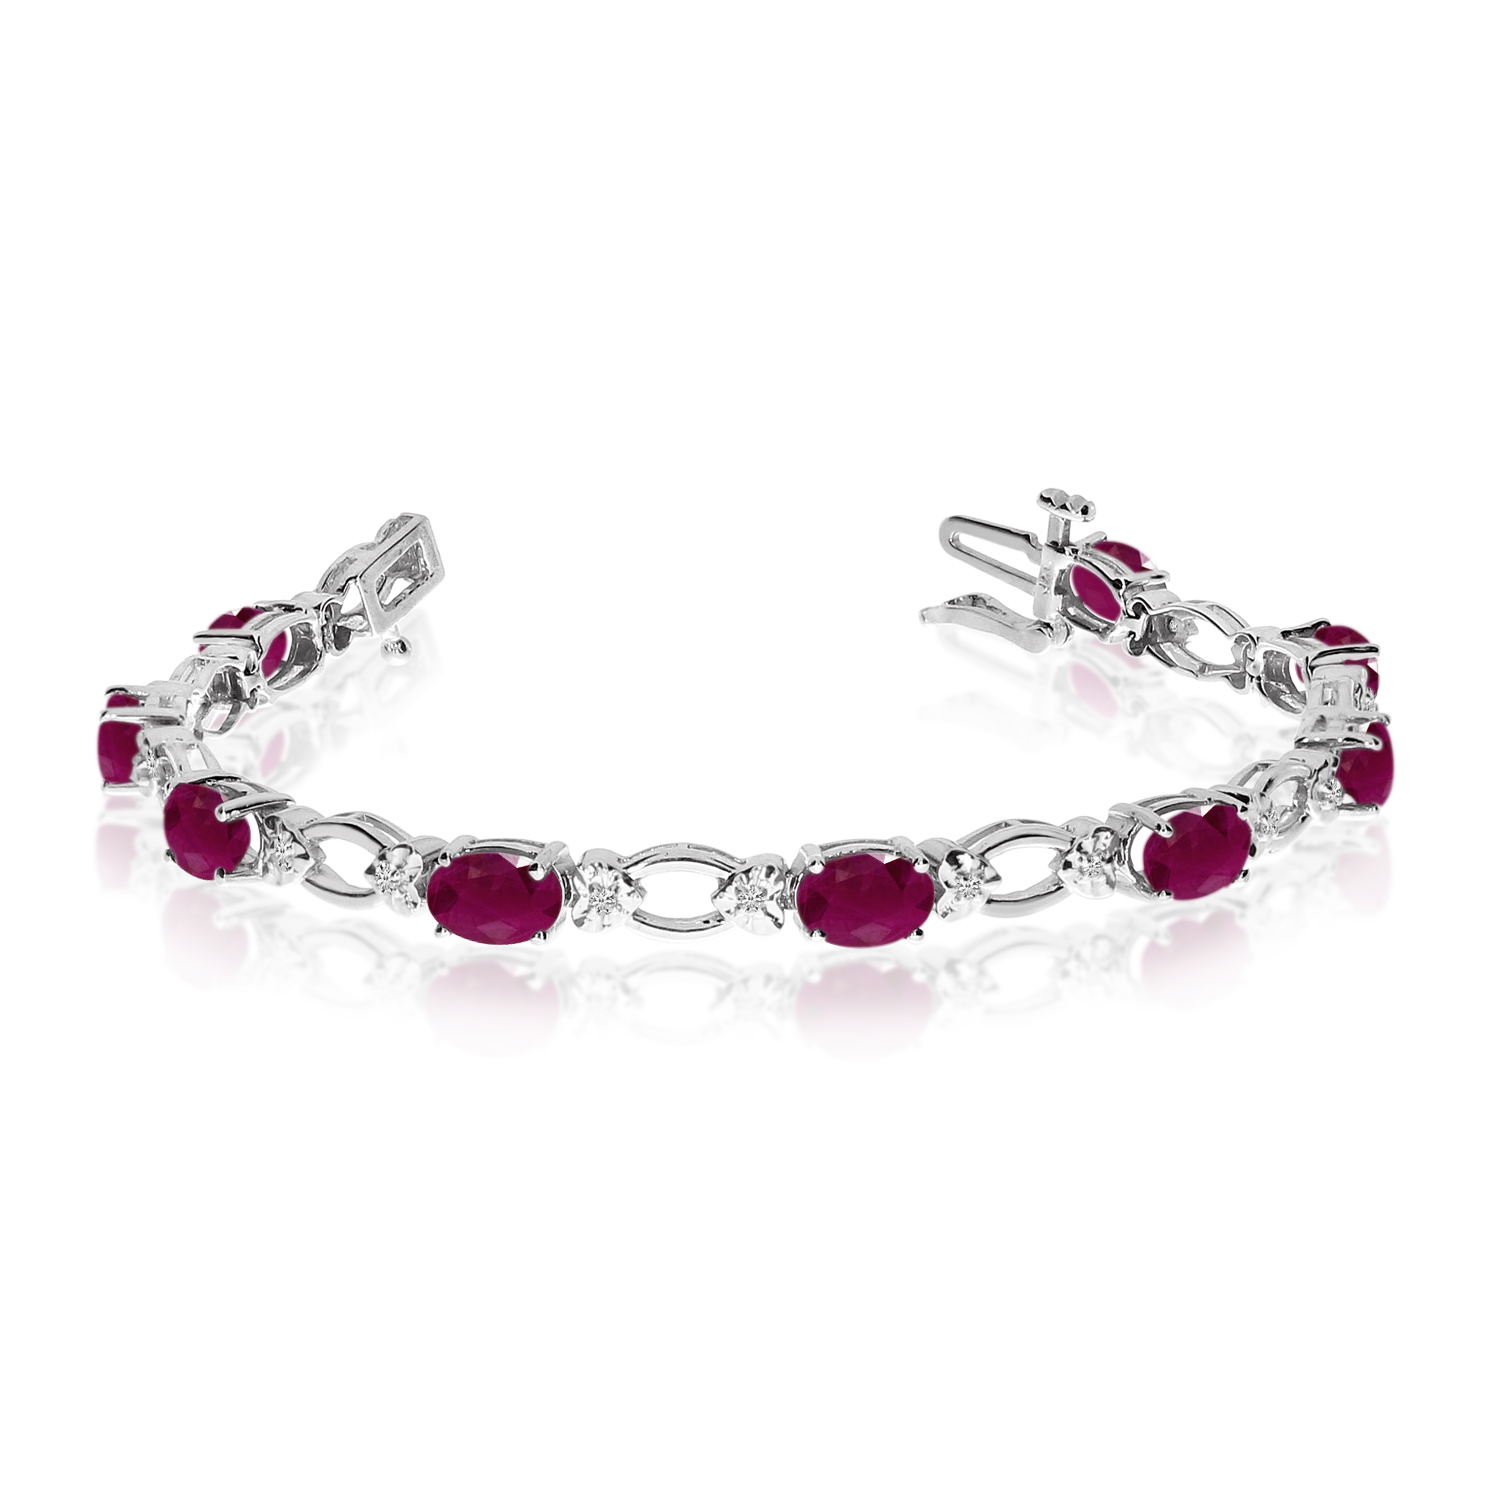 Direct-Jewelry 14k White Gold Natural Ruby And Diamond Tennis Bracelet